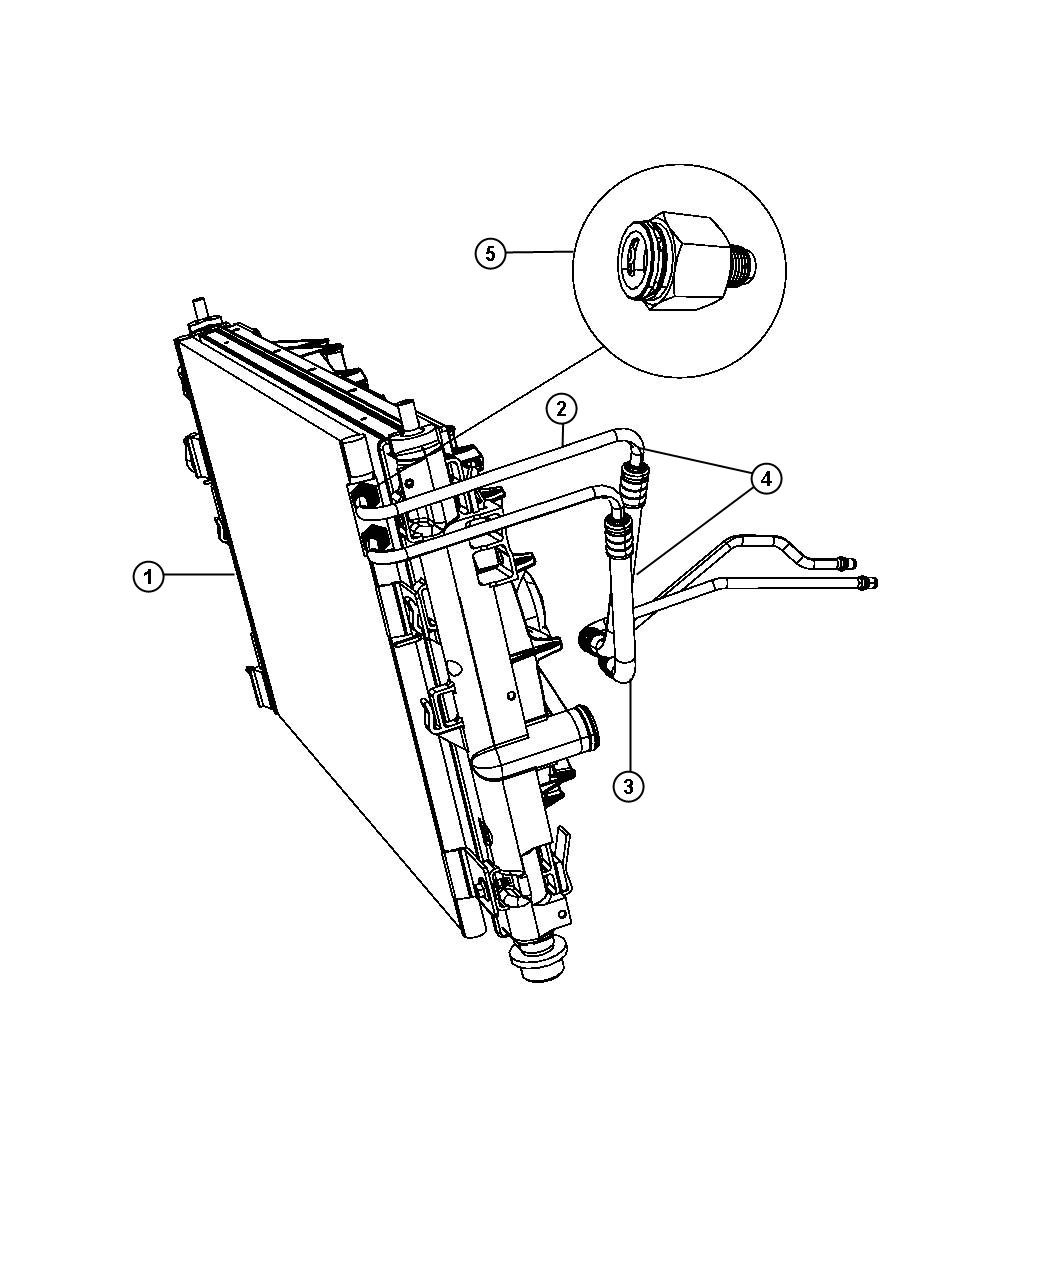 Index cfm likewise Door Latch Removal 2000 Jeep Cherokee Sport also 361181655565 in addition Viewtopic further 34a60 Inside Fuse Box 01 Town Country. on 2013 chrysler 200 accessories